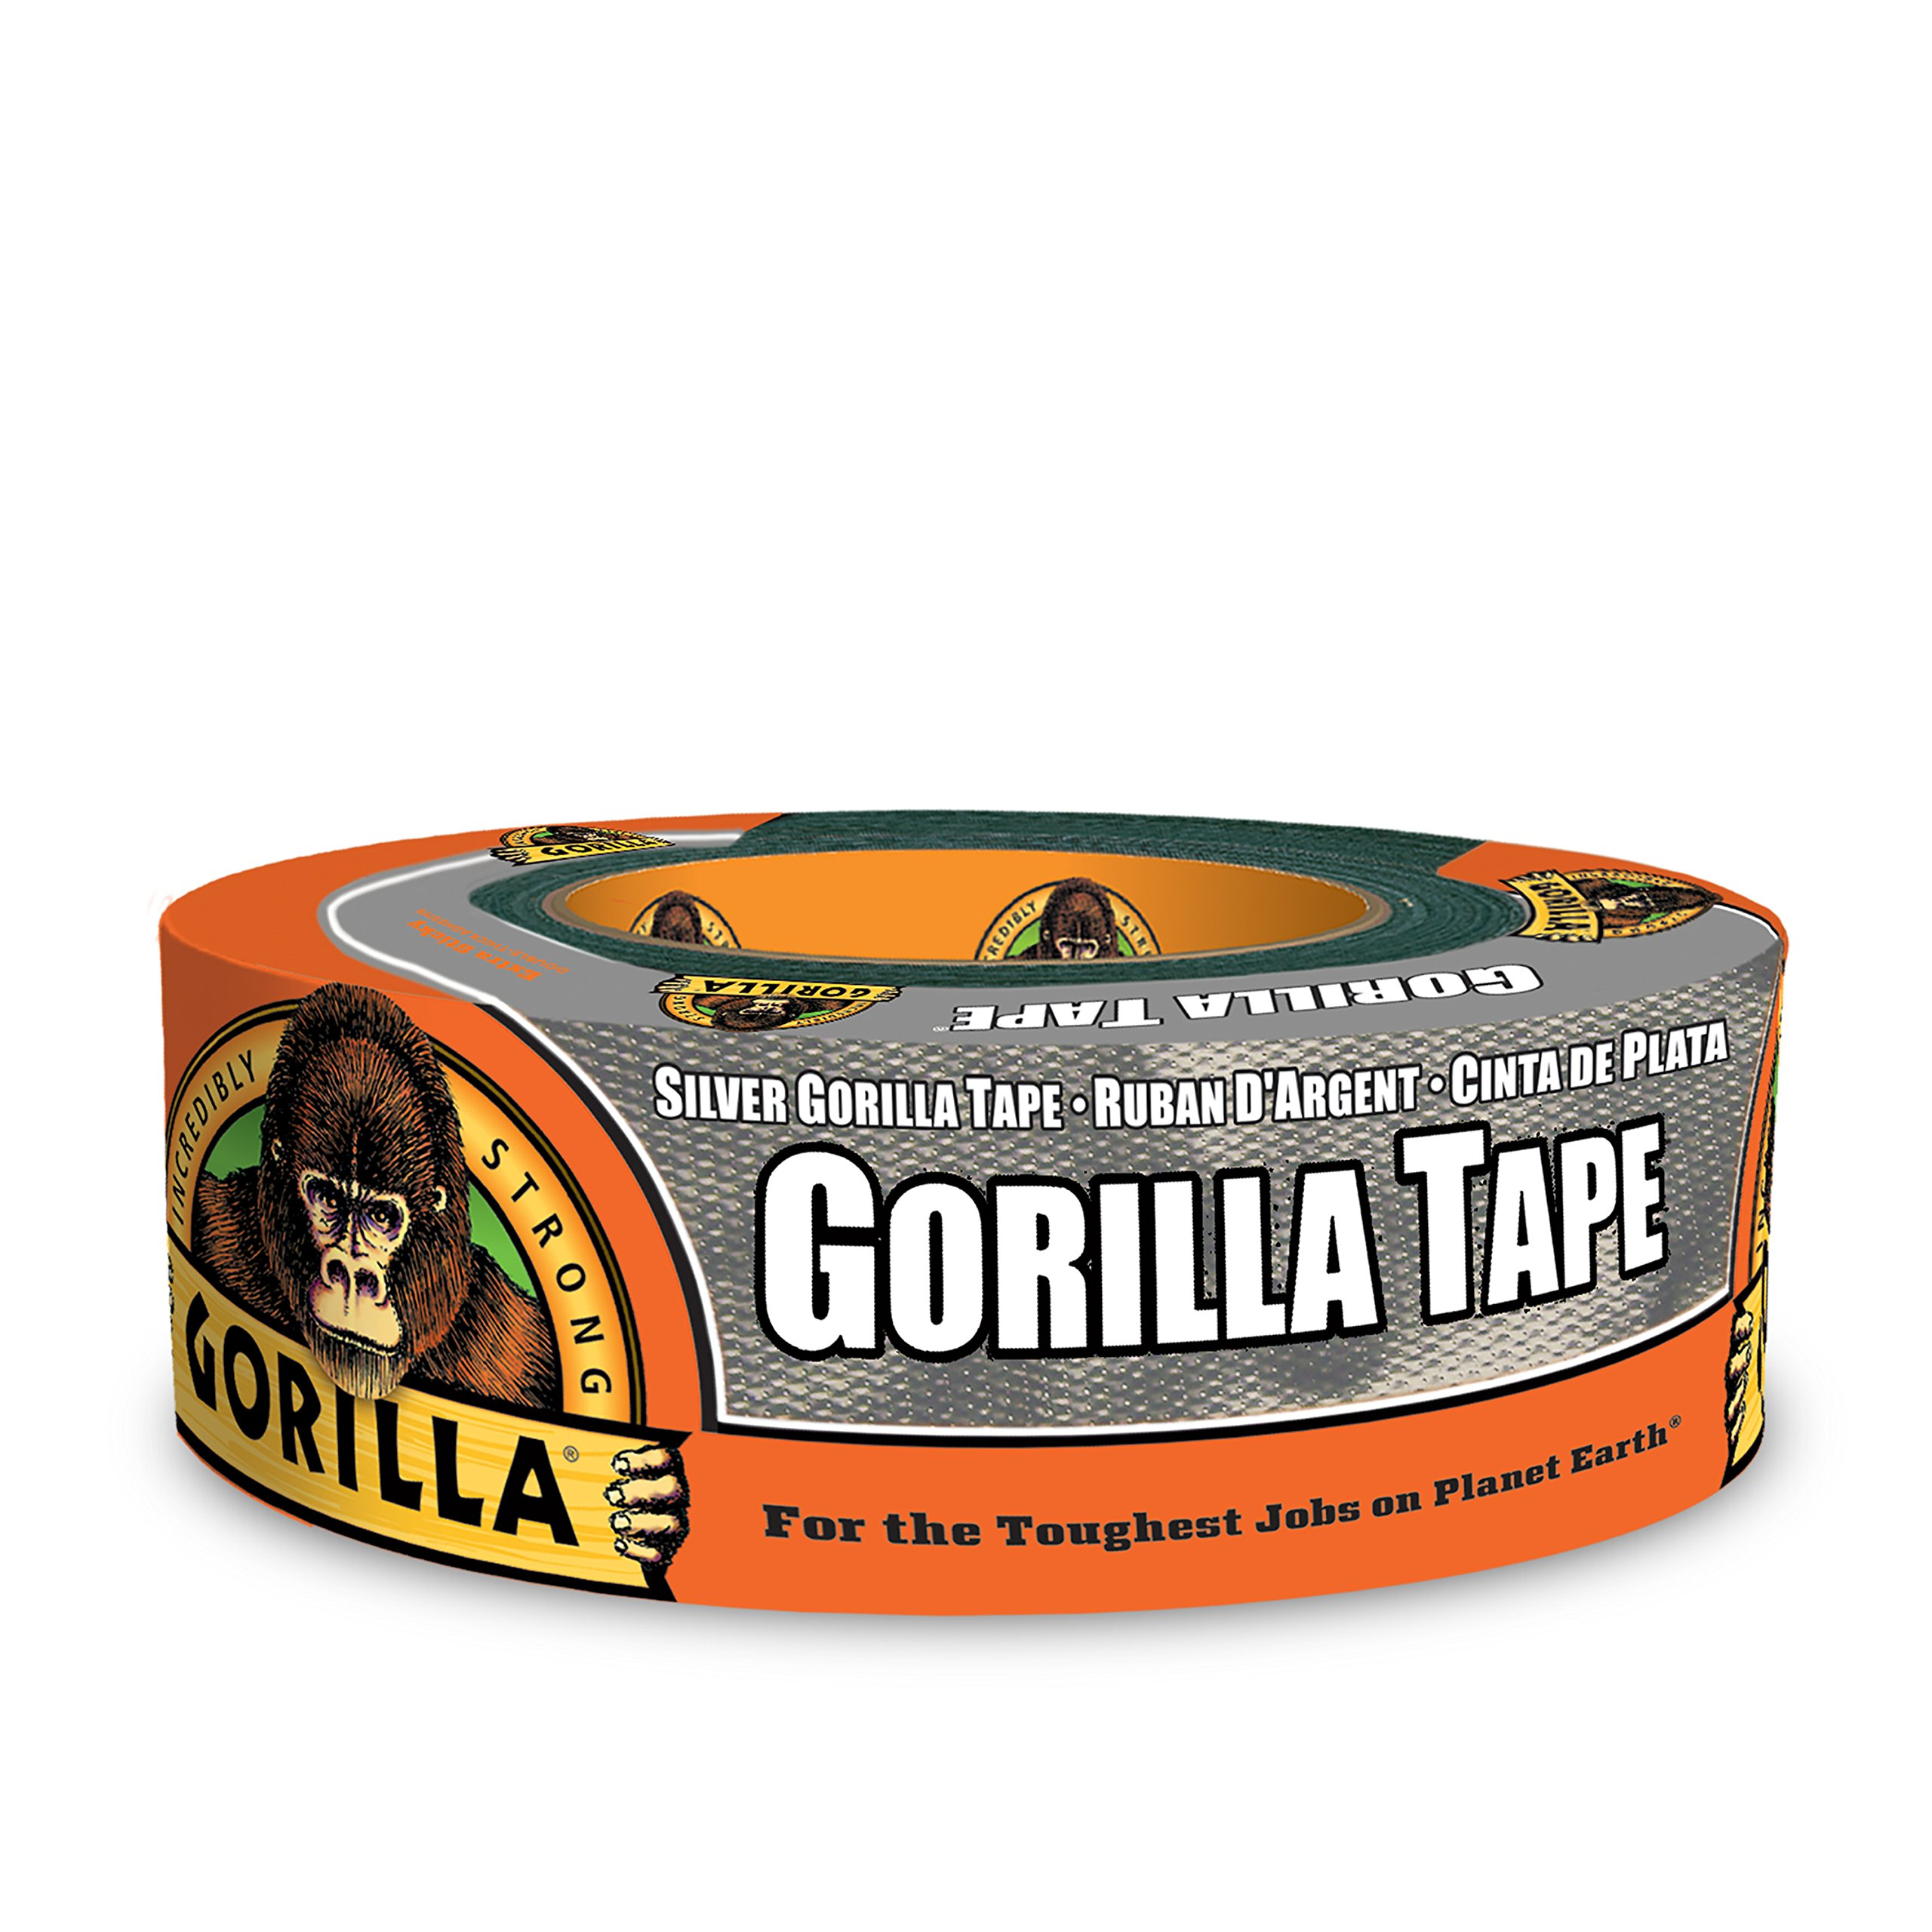 Gorilla Tape, Silver Duct Tape, 1.88'' x 35 yd, Silver, (Pack of 1)